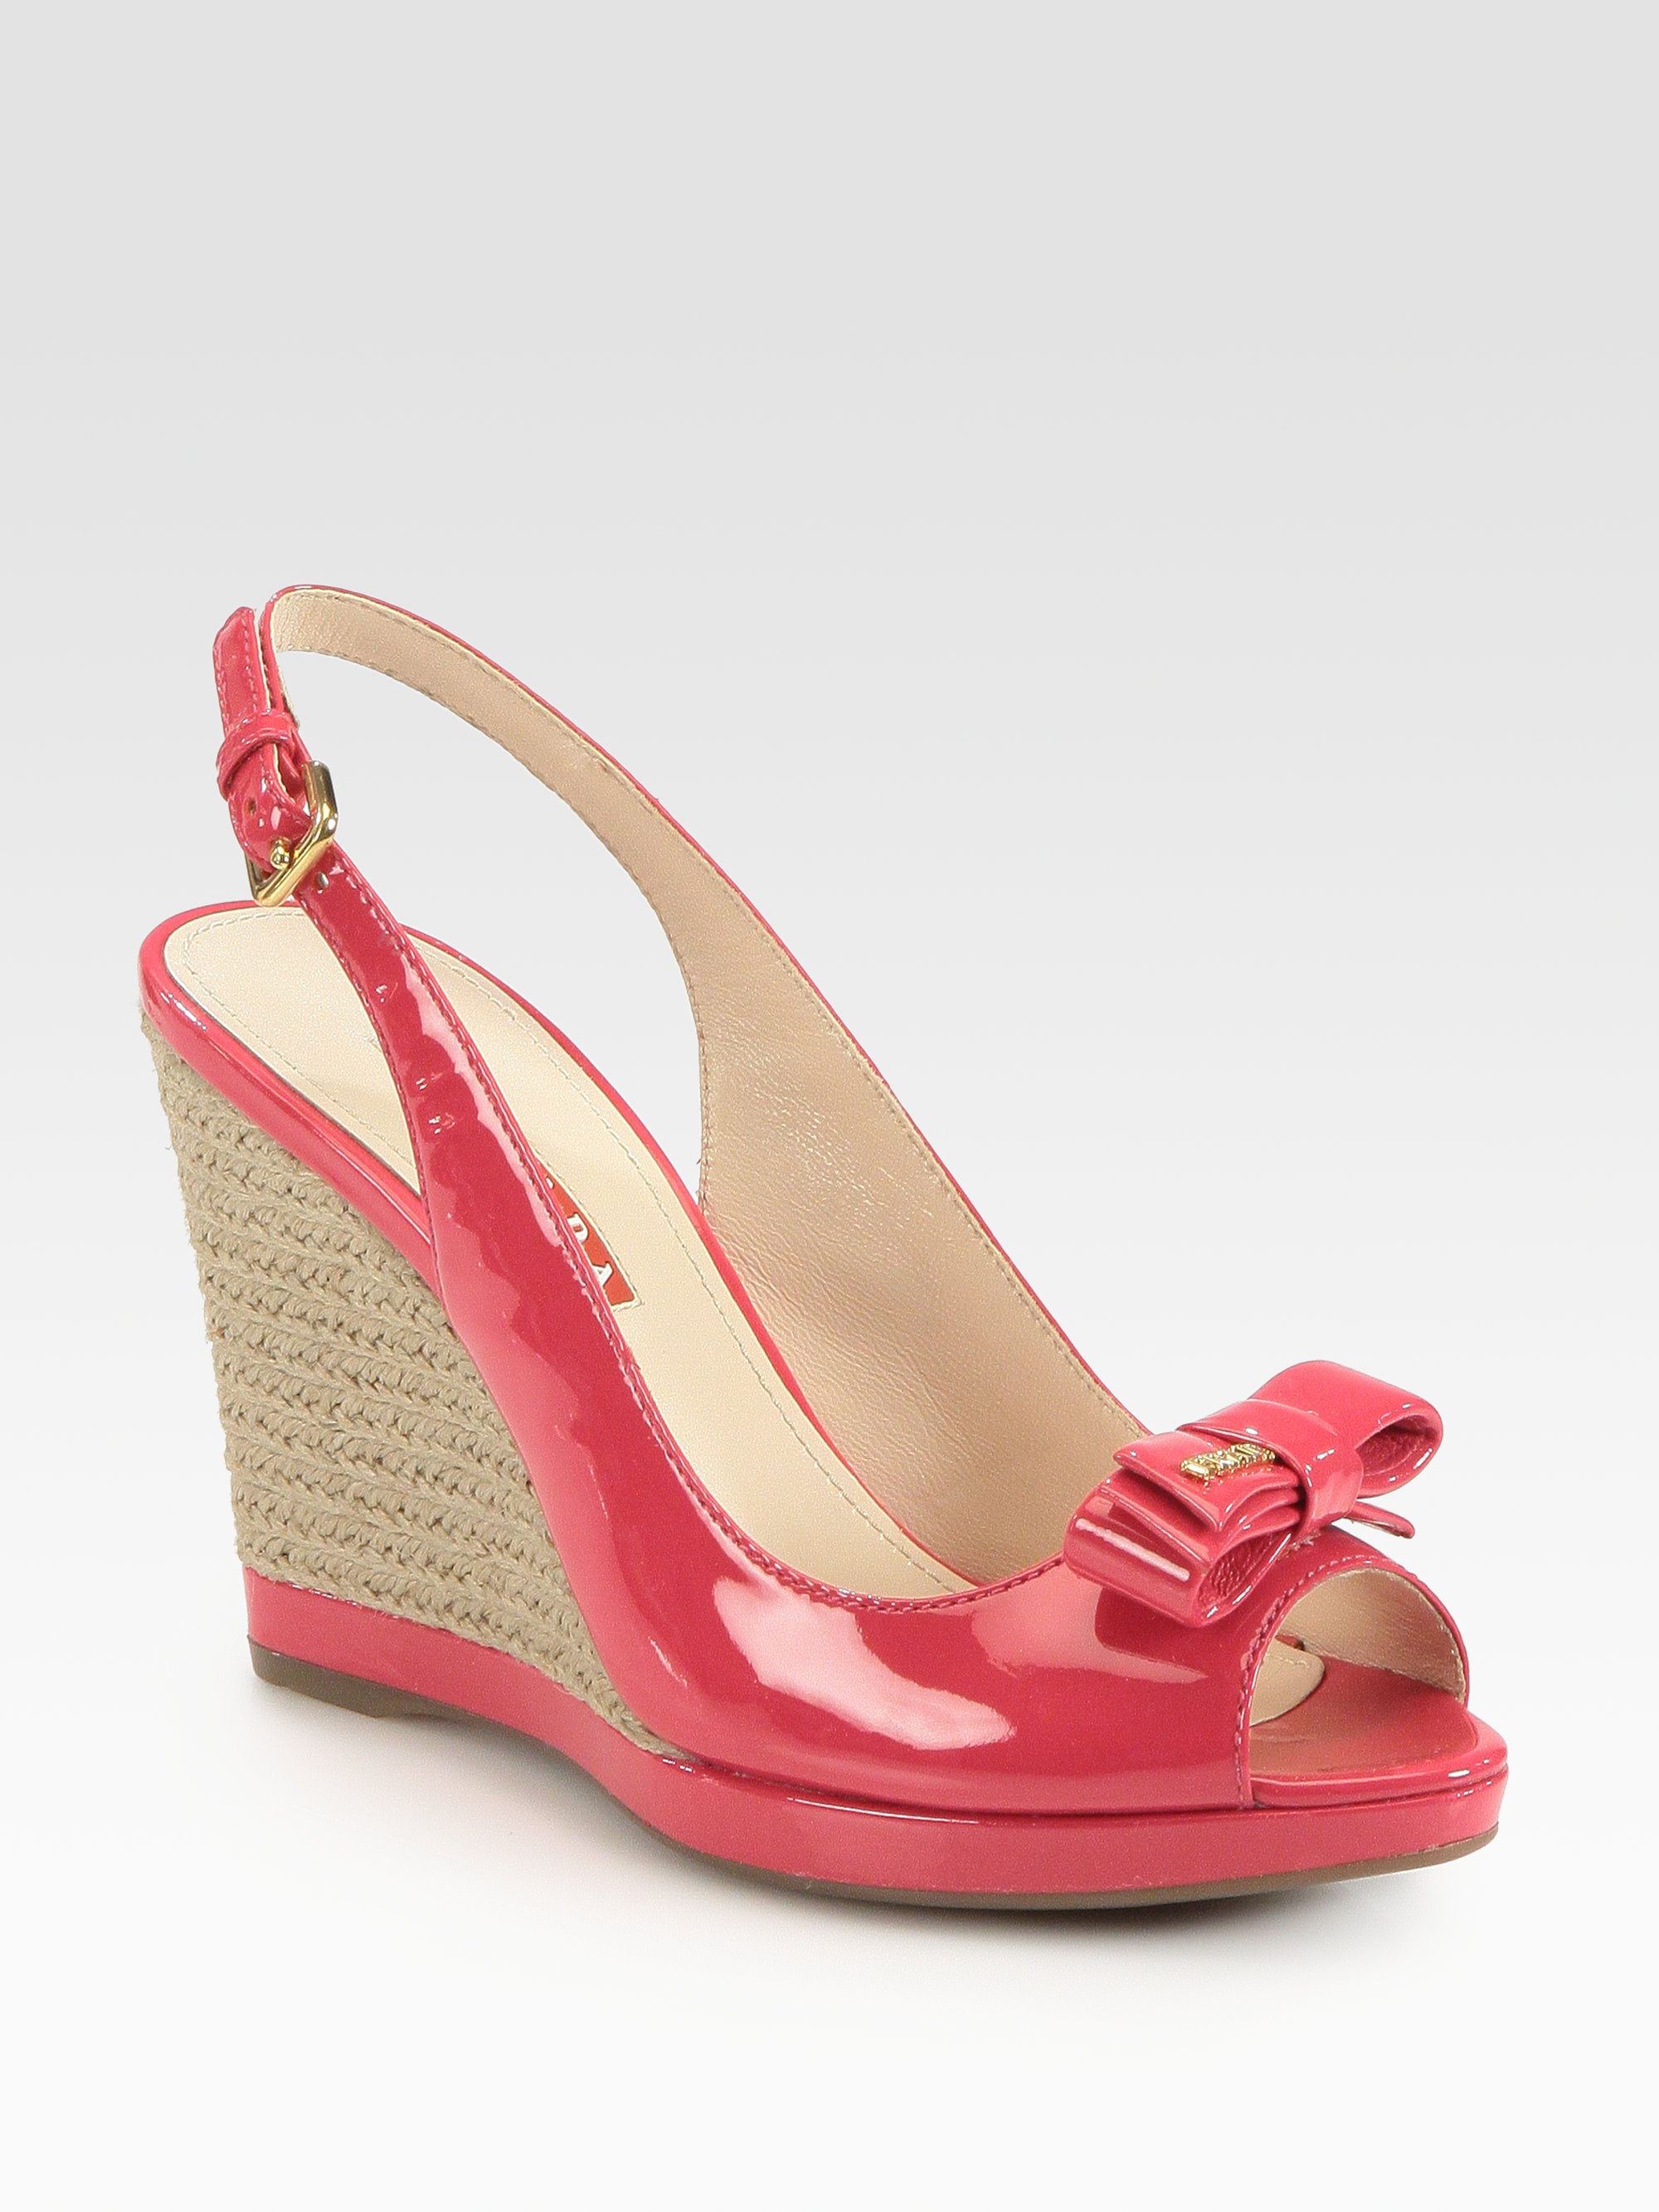 prada patent leather bow espadrille wedge sandals in pink